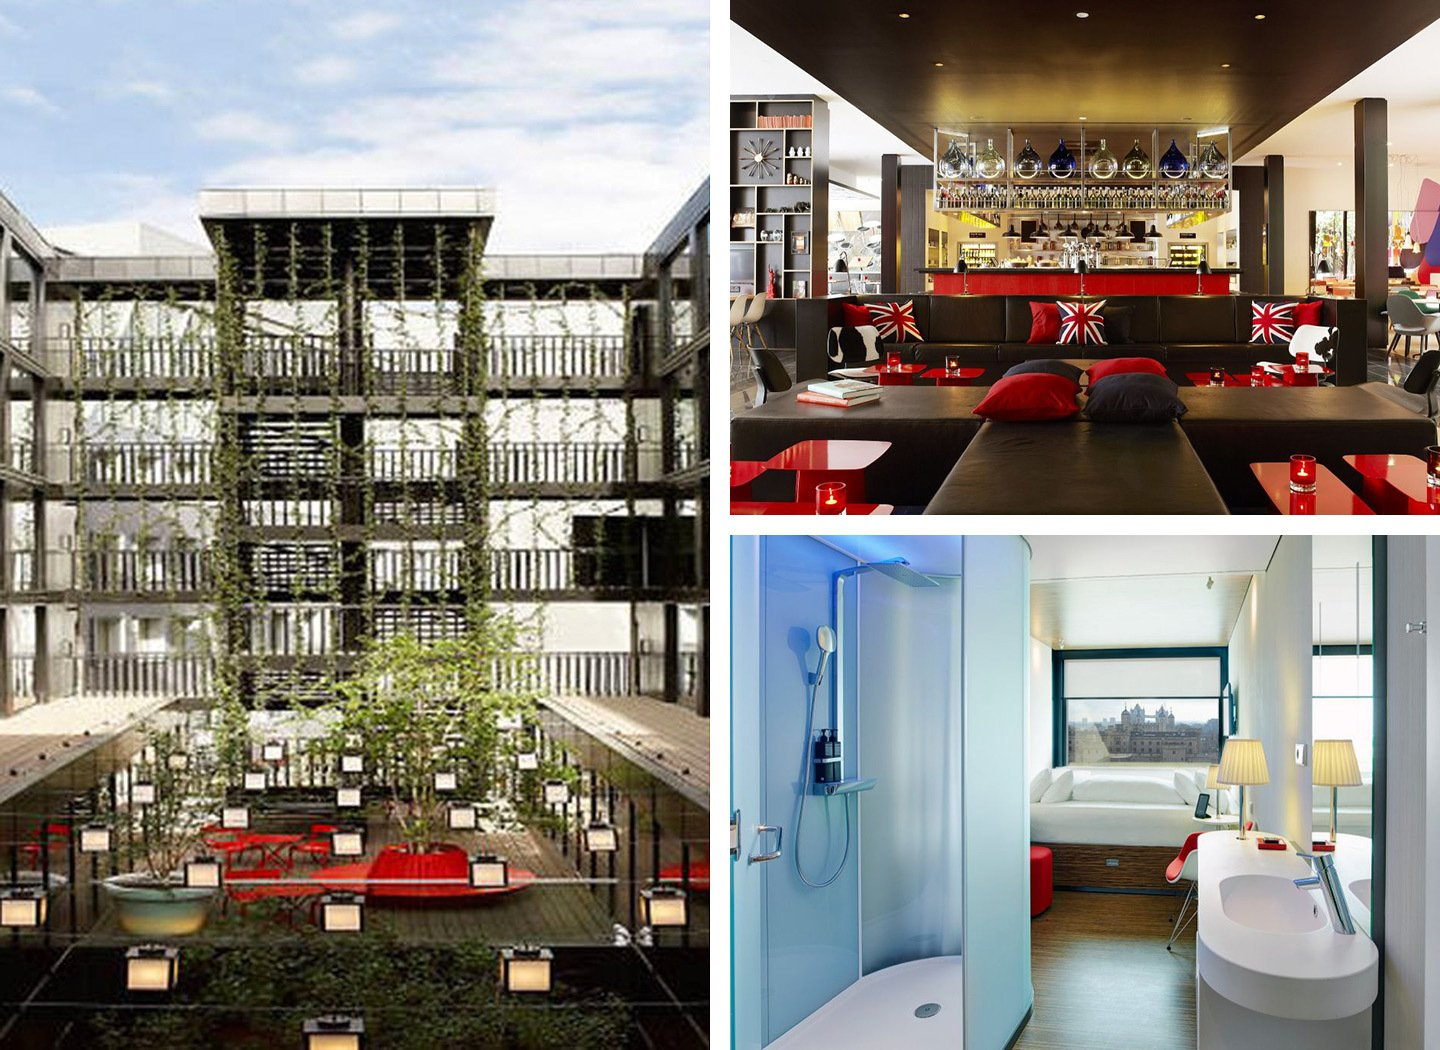 Citizen M affordable hotel chain in London